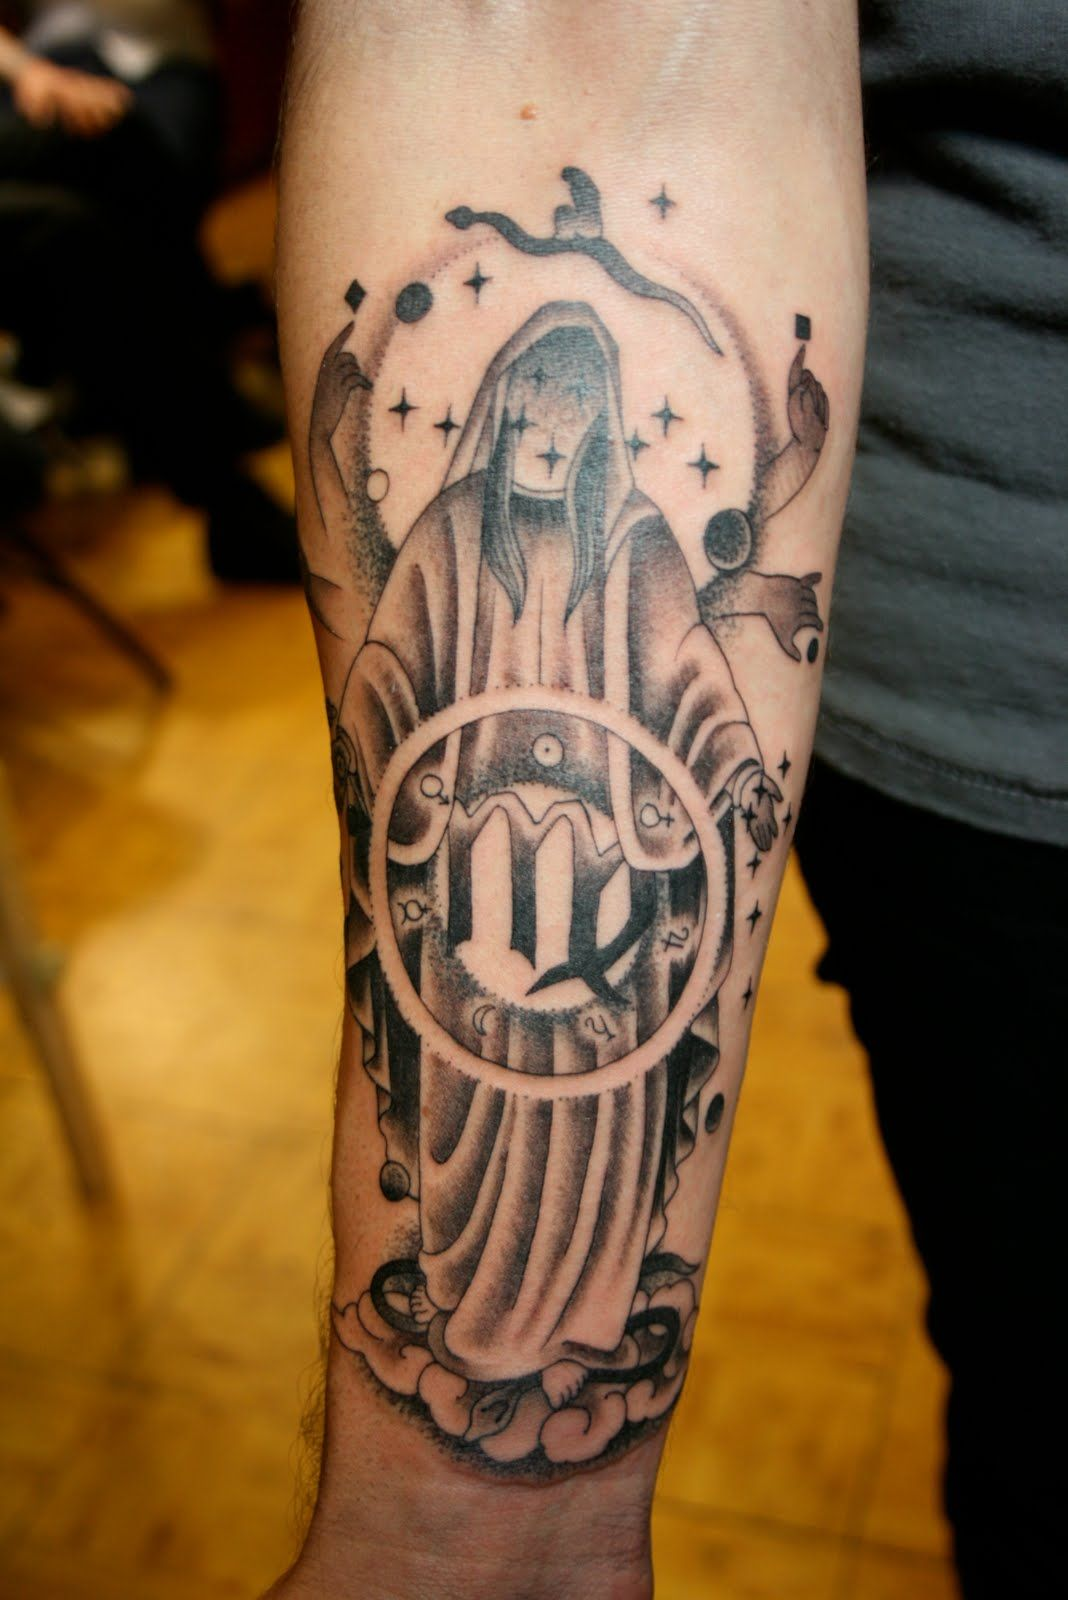 f725fd547d267 Download Free Virgo Tattoos For Men virgo tattoos designs ideas and meaning  tattoos ... to use and take to your artist.